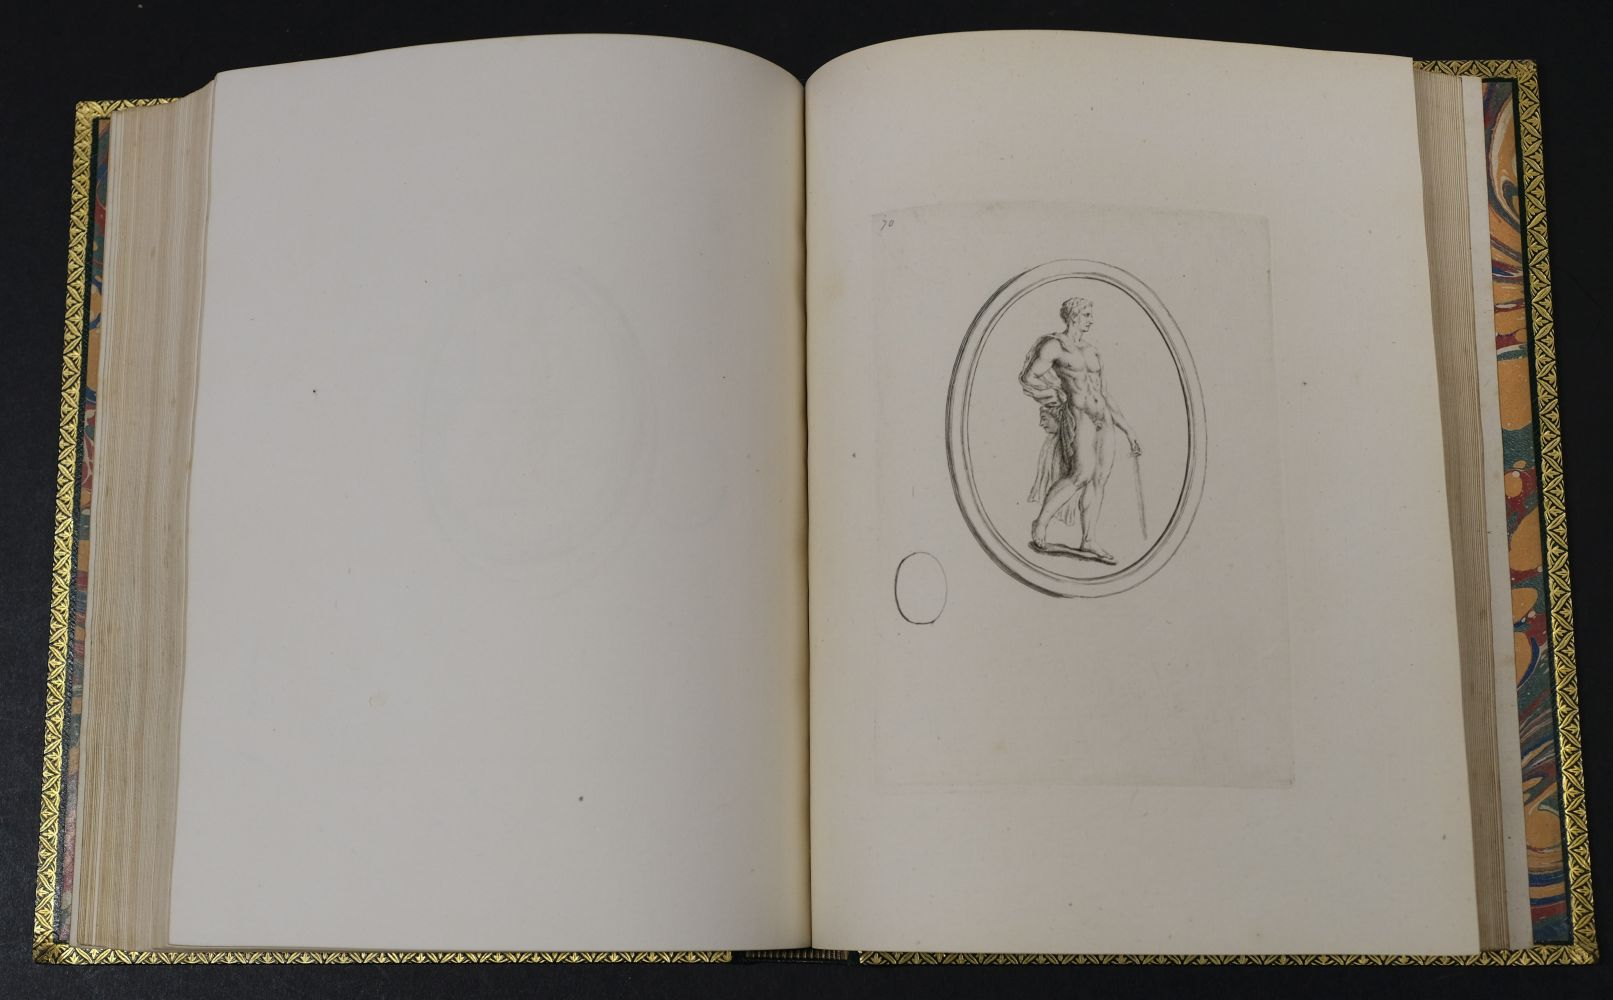 Devonshire Gems. Duke of Devonshire's Collection of Gems, privately printed, circa 1790 - Image 15 of 16